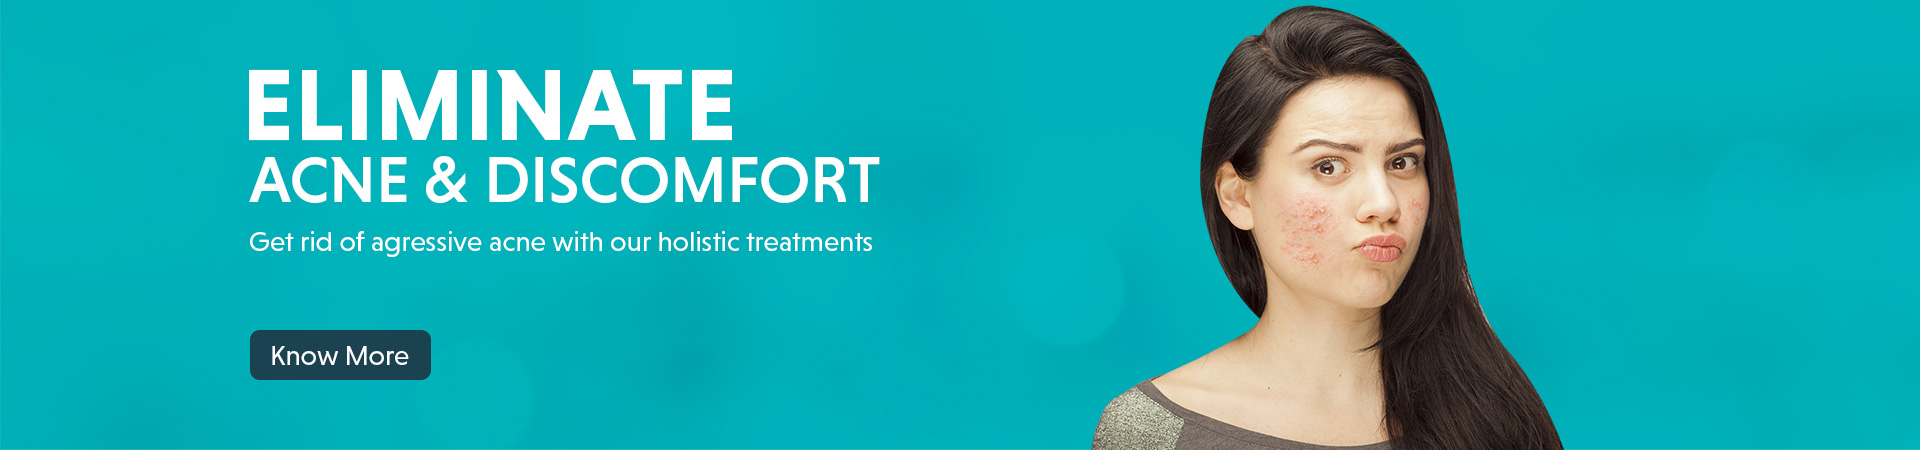 acne pimple treatment offer